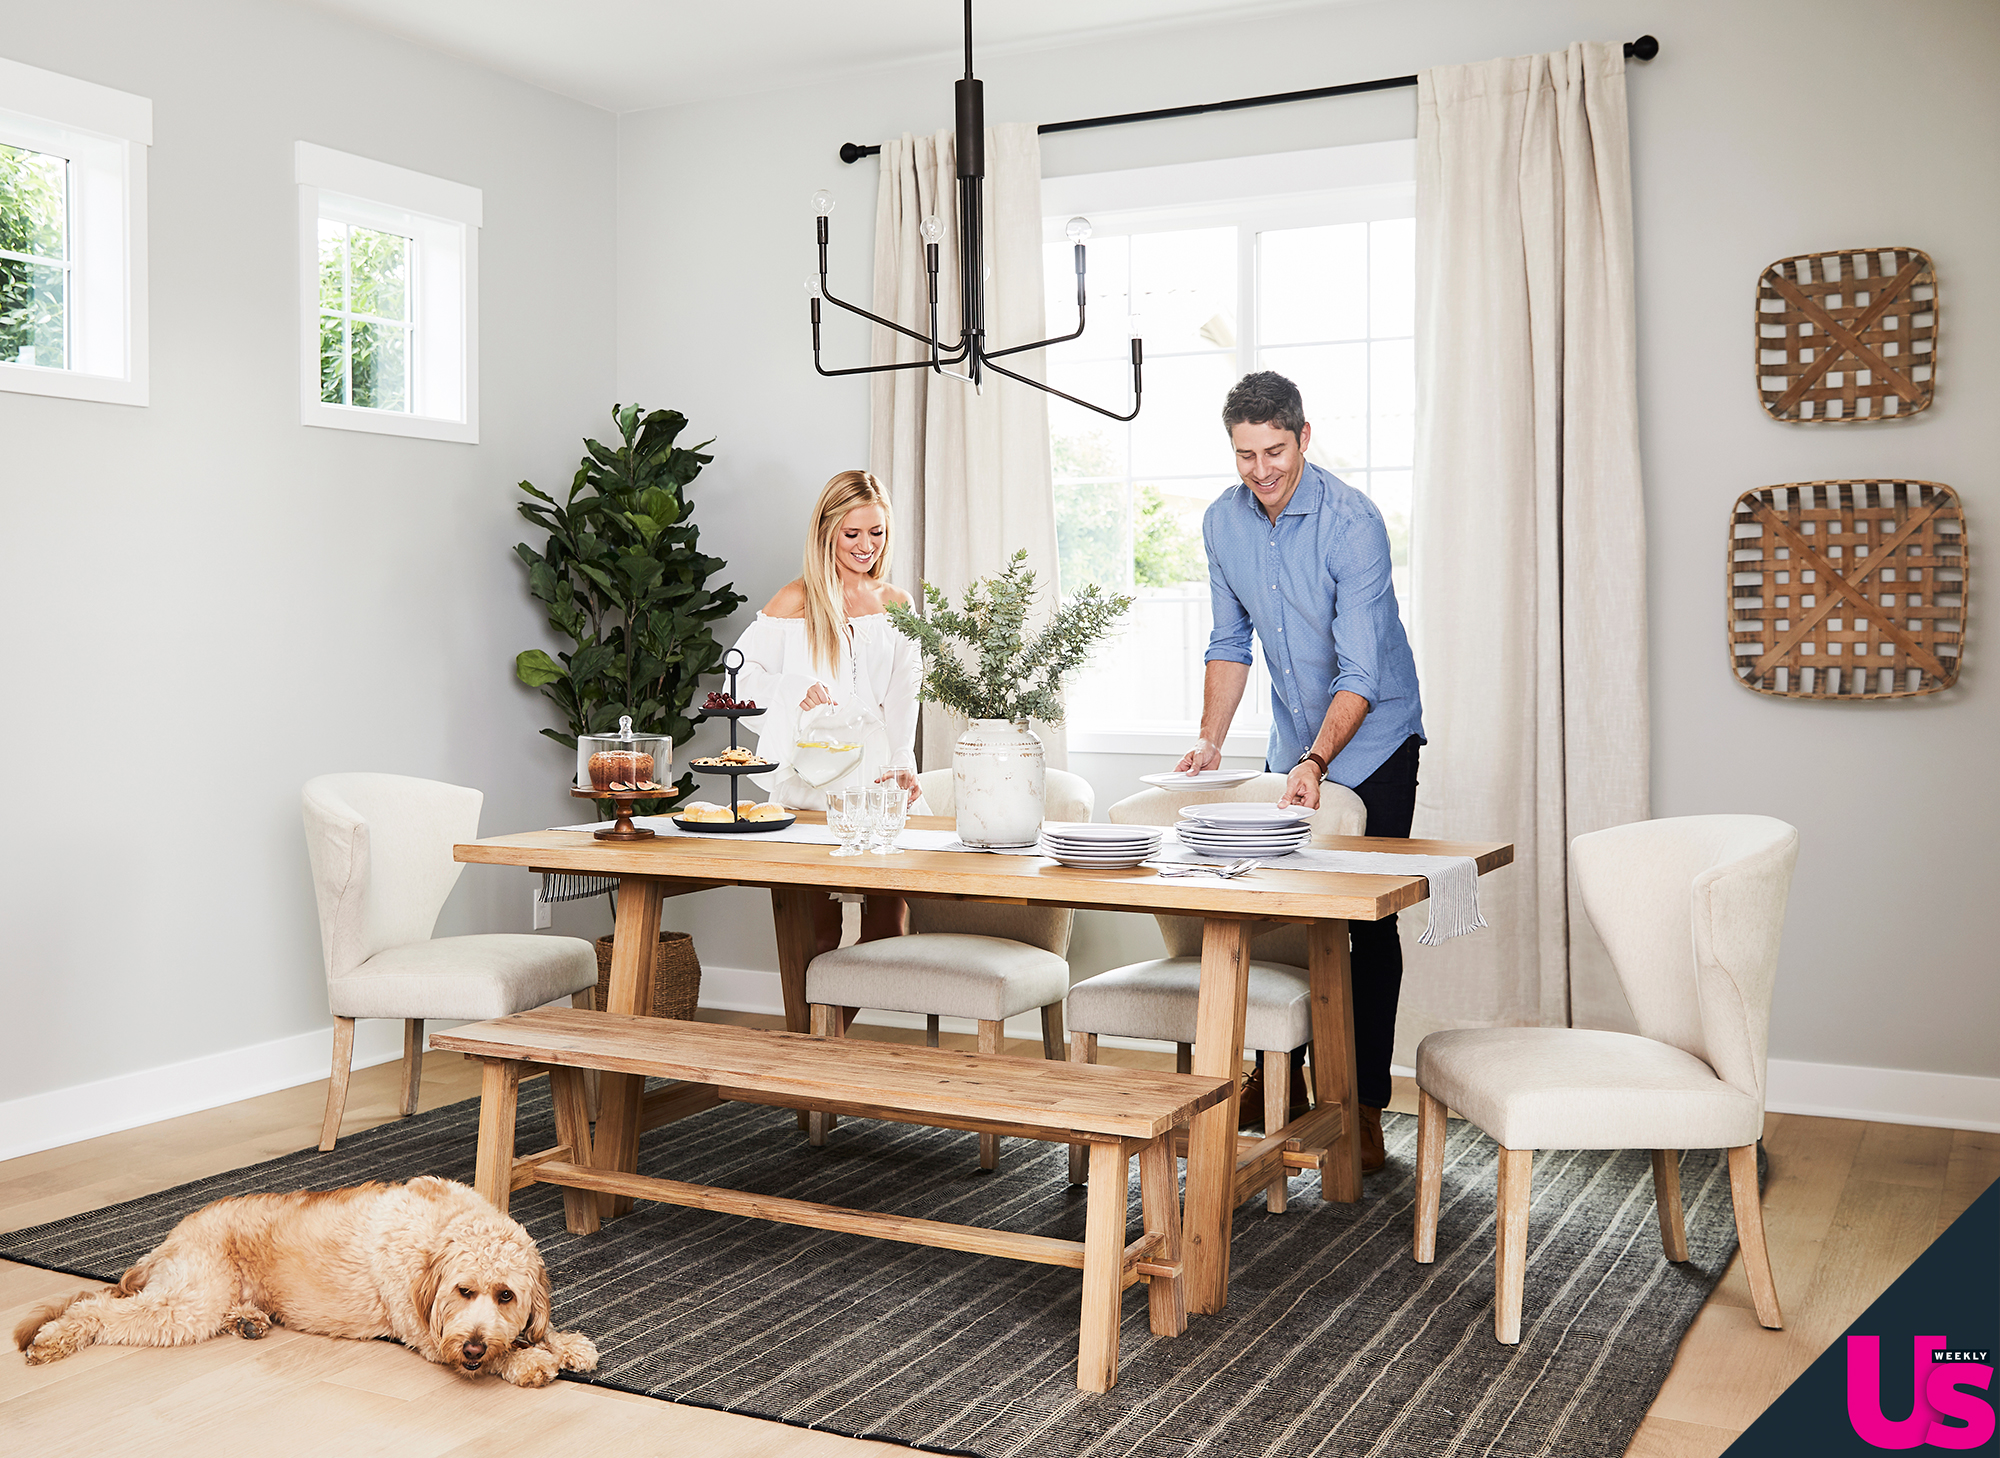 """Arie Luyendyk Jr Lauren Burnham New Home - """"We chose a beautiful birch farmhouse table. To make it a little more formal, we paired it with more traditional style chairs,"""" the Bachelor season 22 lead tells Us . """"The rug we selected for underneath the table is a bit darker than everything else in that room to add some contrast."""""""